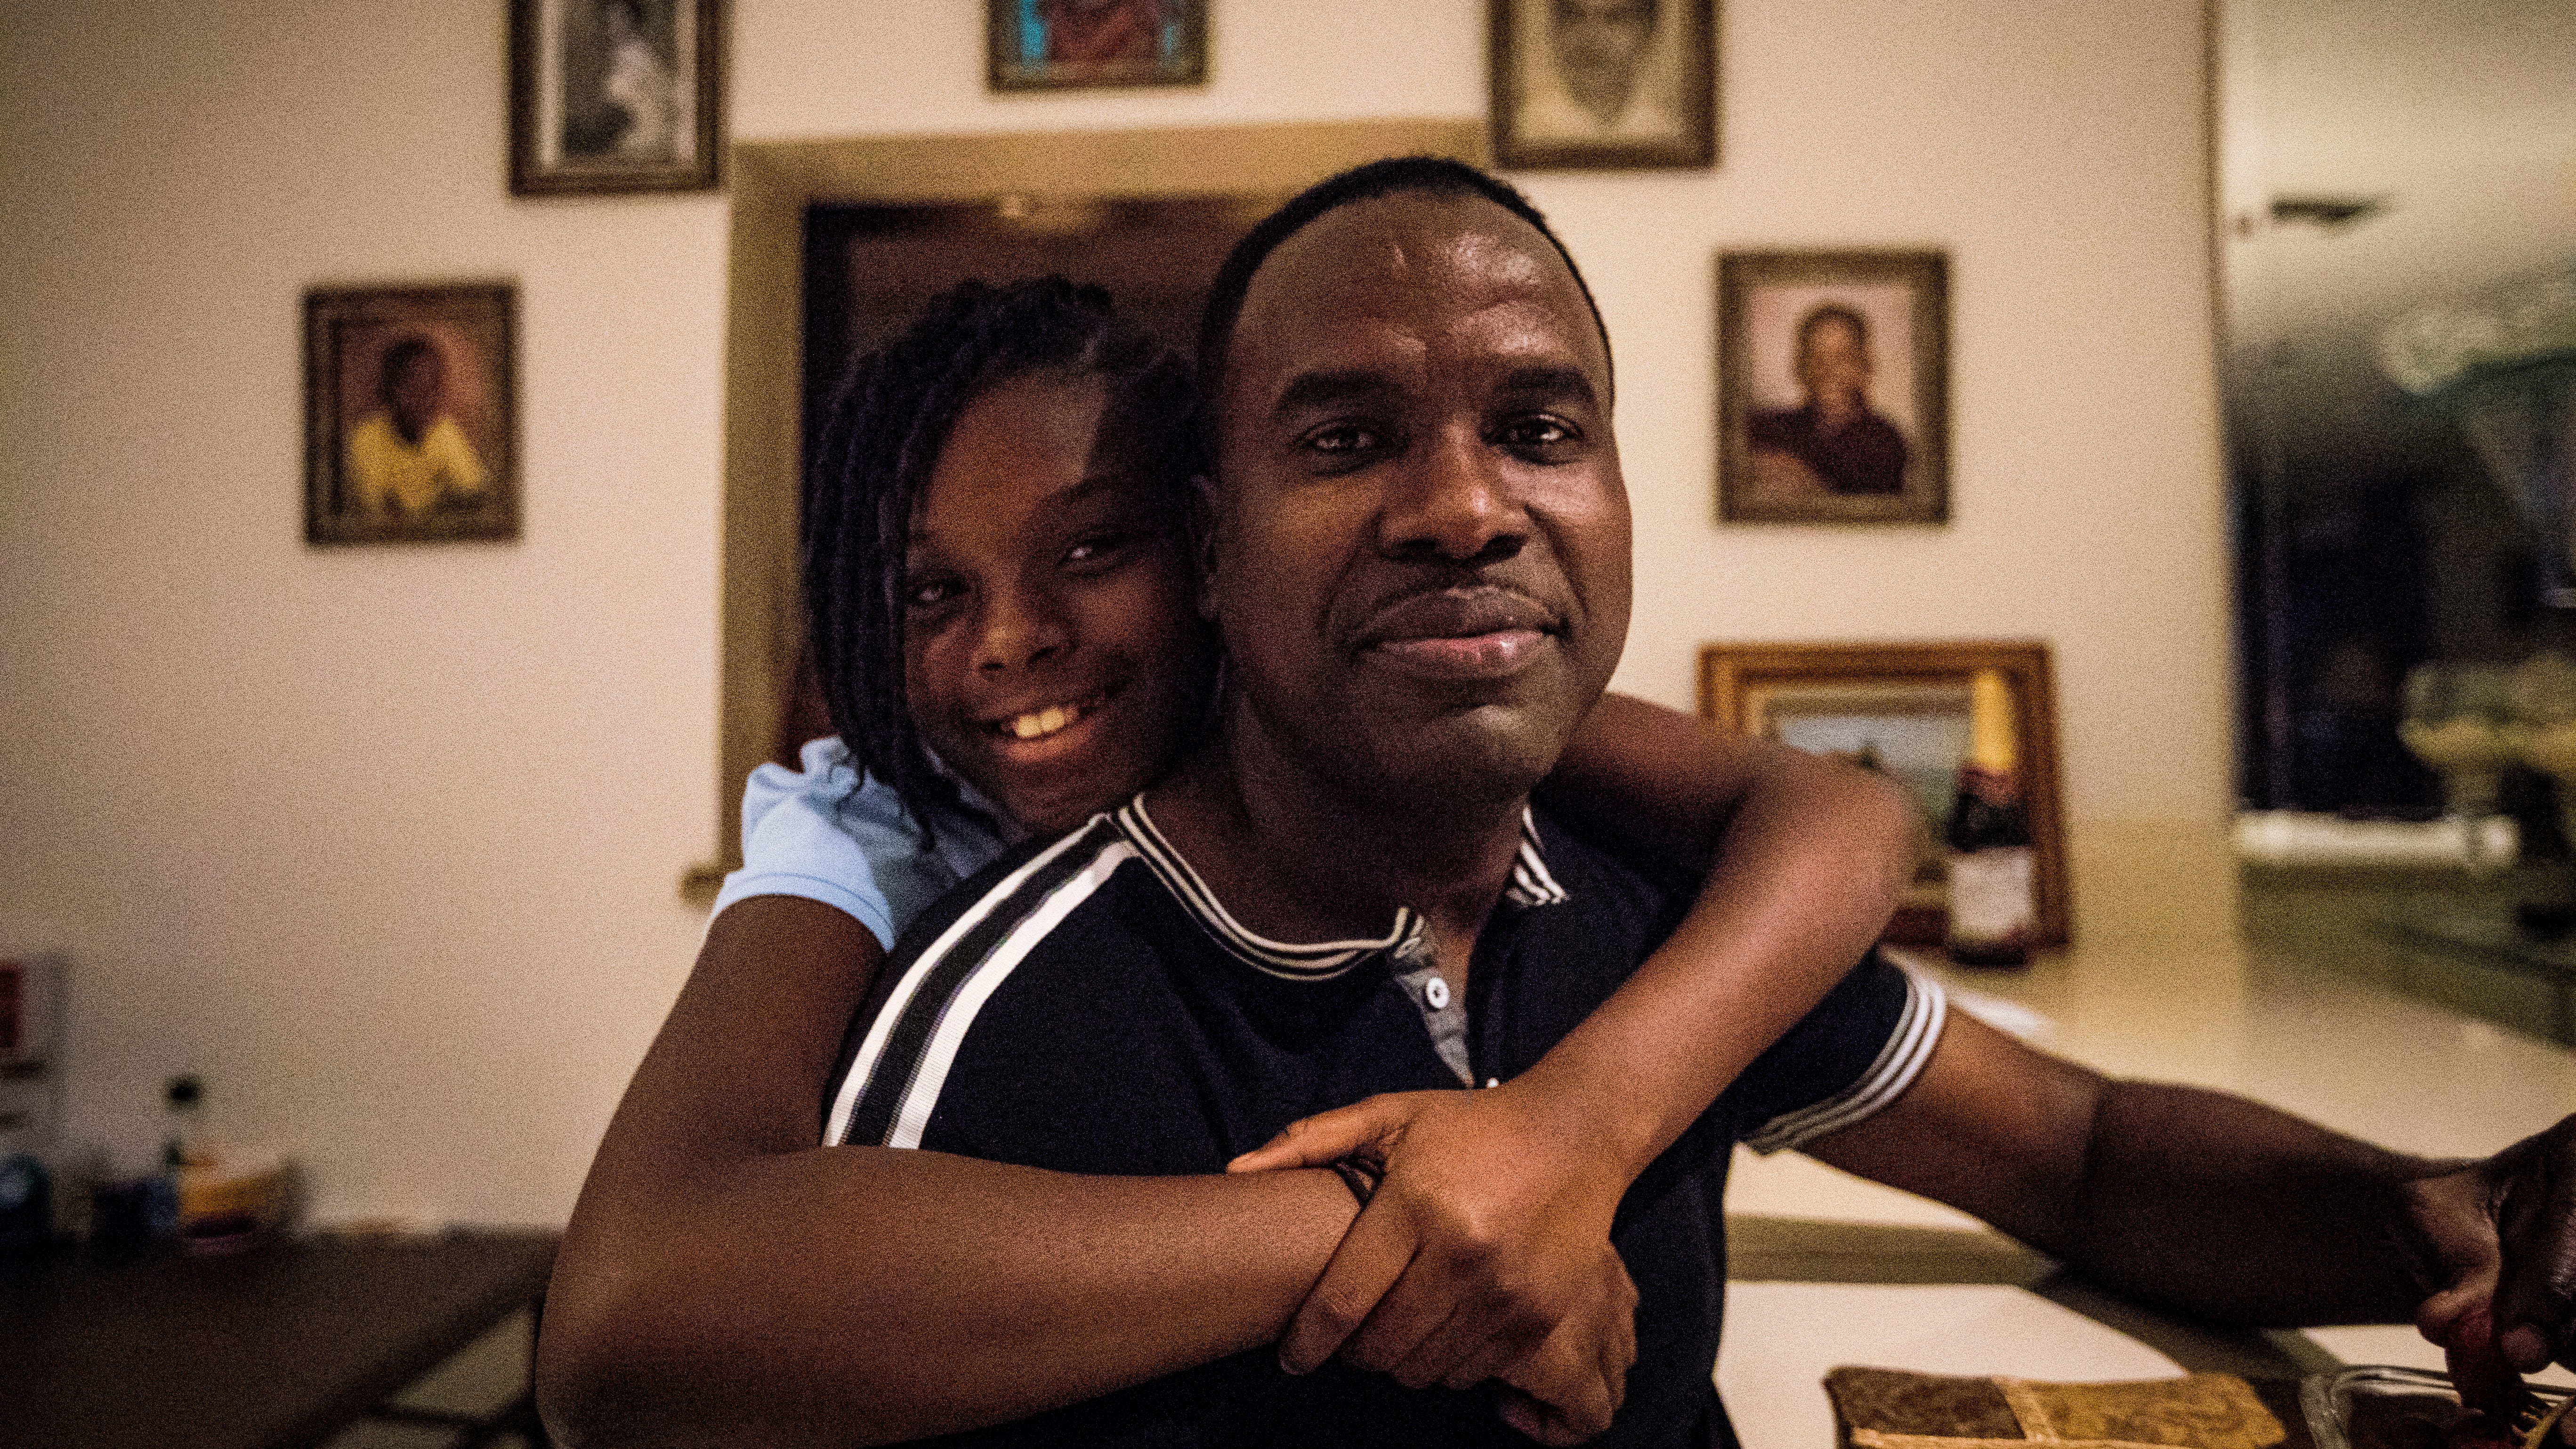 Rony Ponthieux (right) and his 11-year-old daughter Ronyde Christina Ponthieux (left) are facing a life-changing decision as the Trump administration phases out the Temporary Protected Status (TPS) program. Rony, a registered nurse who has been a legal resident under the TPS program for nearly a decade, must return to his native Haiti by July 22, 2019, or risk becoming an undocumented immigrant at risk of deportation. Ronyde is a U.S. citizen and her parents don't know if they'll take her to Haiti, a country she's never visited, or leave her behind in the U.S. Hundreds of thousands of families around the country are facing the same quandary.